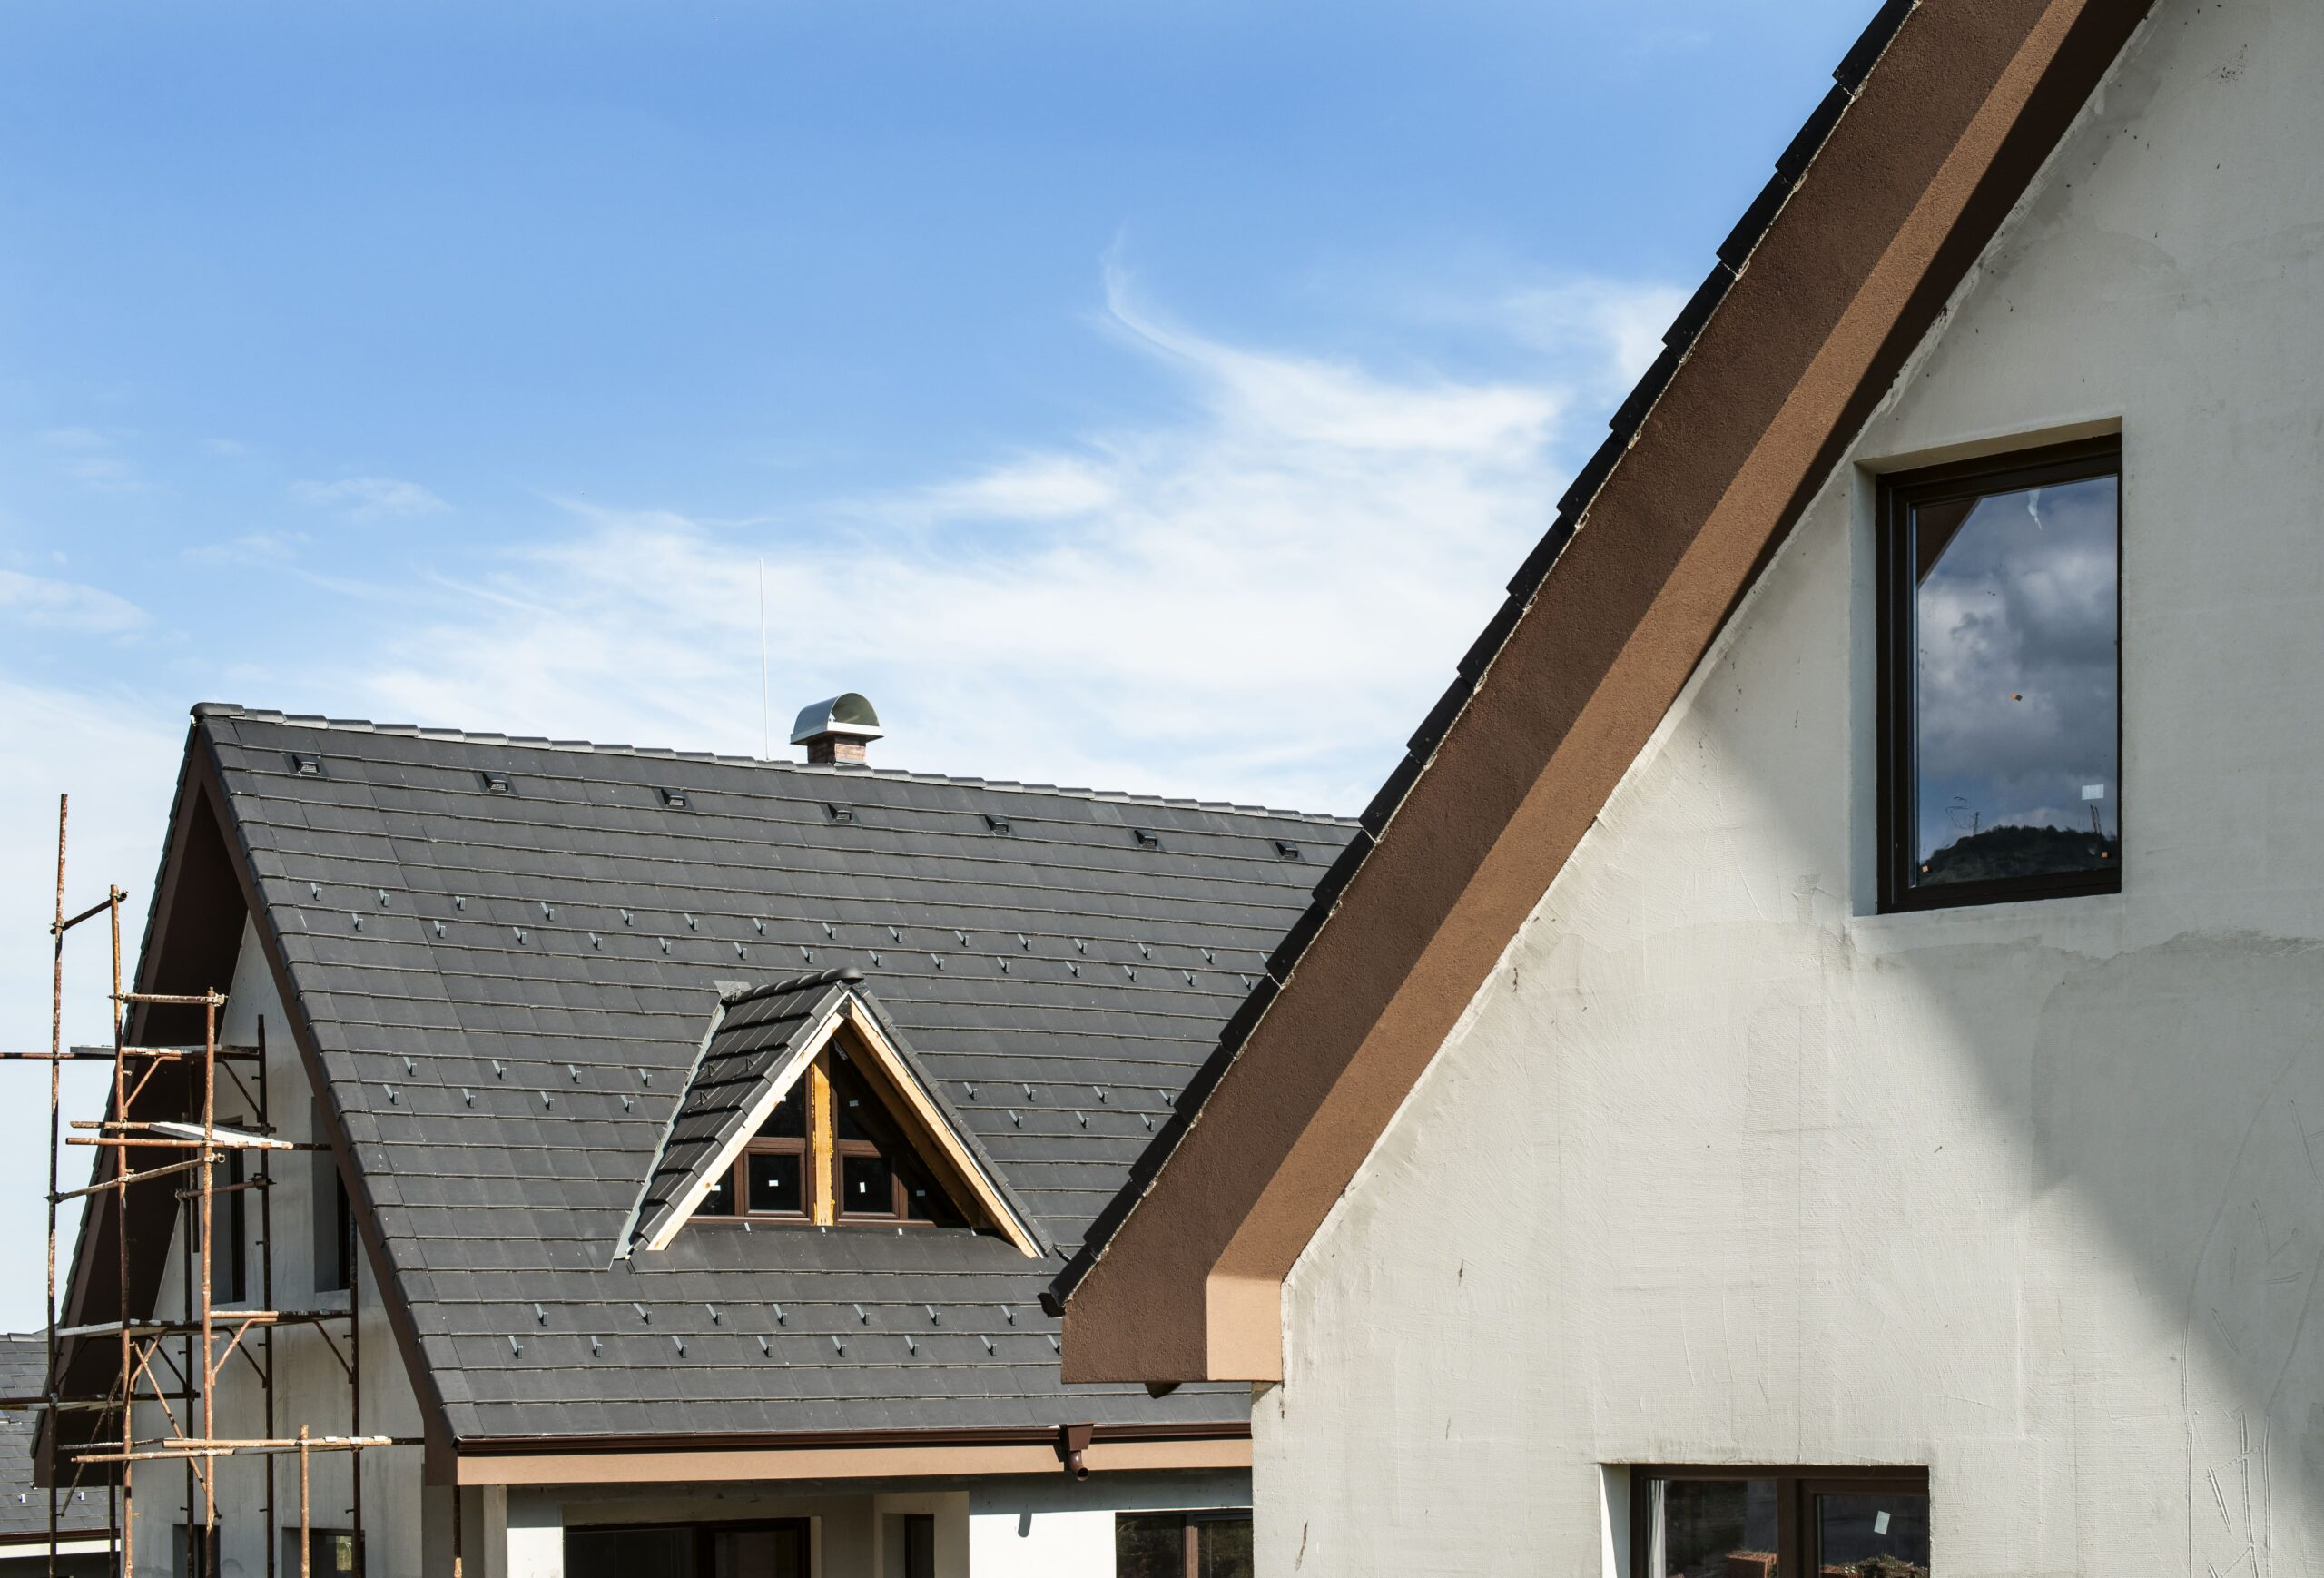 Flat Roof Vs Pitched Roof Cache Roofing